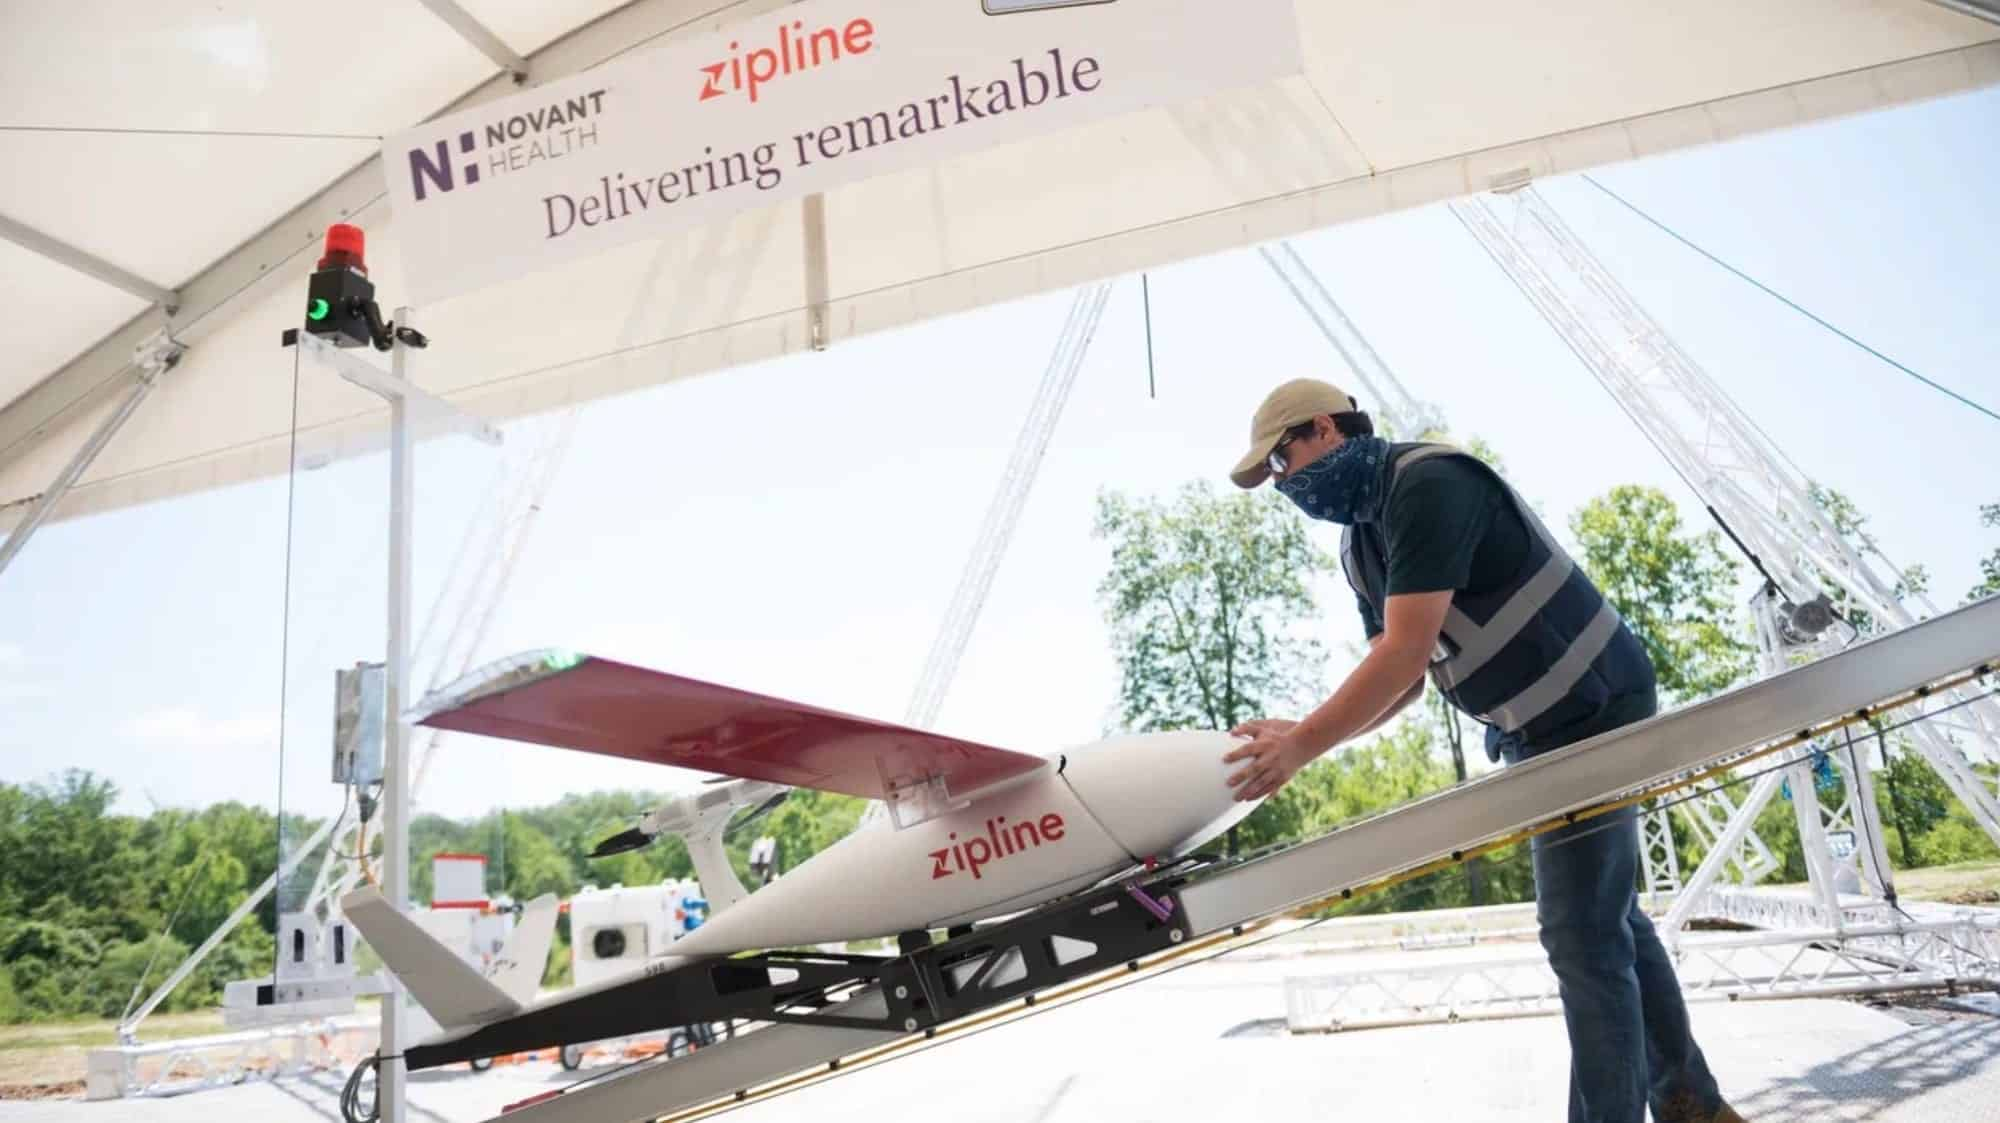 FAA approves Zipline's drone delivery system in North Carolina